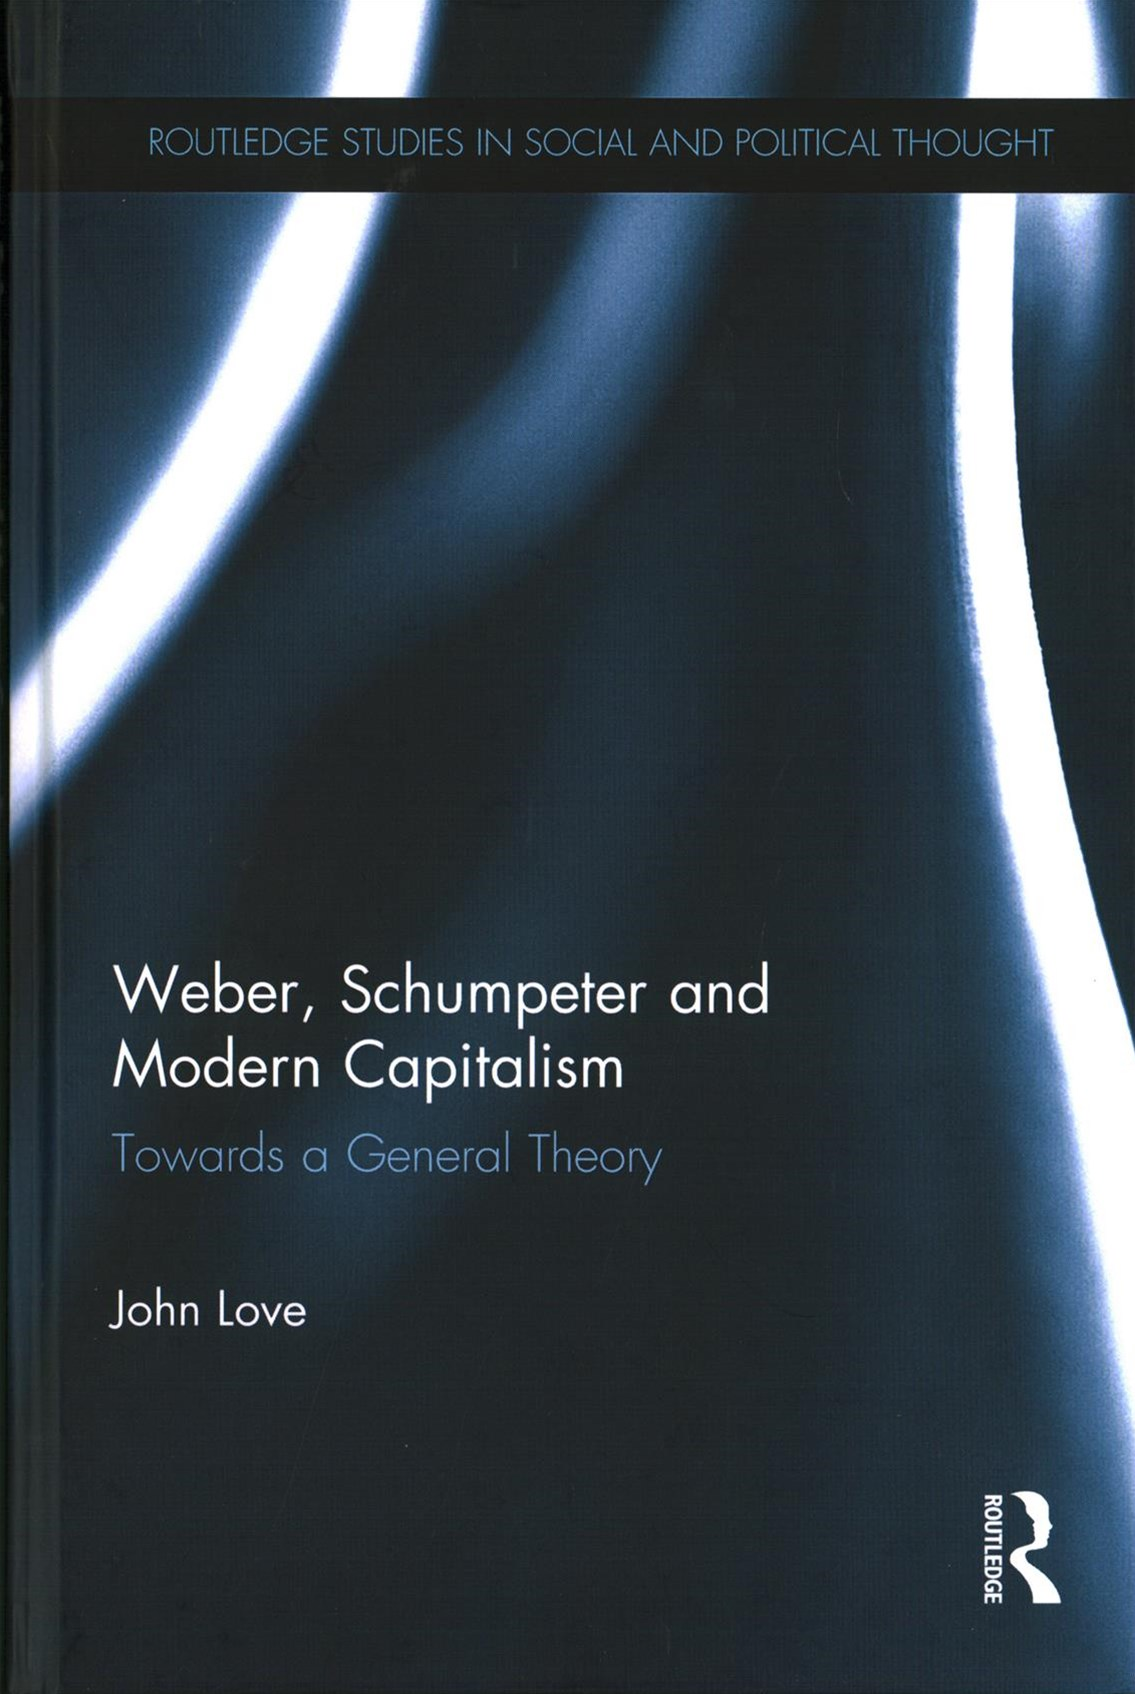 Weber, Schumpeter and Modern Capitalism